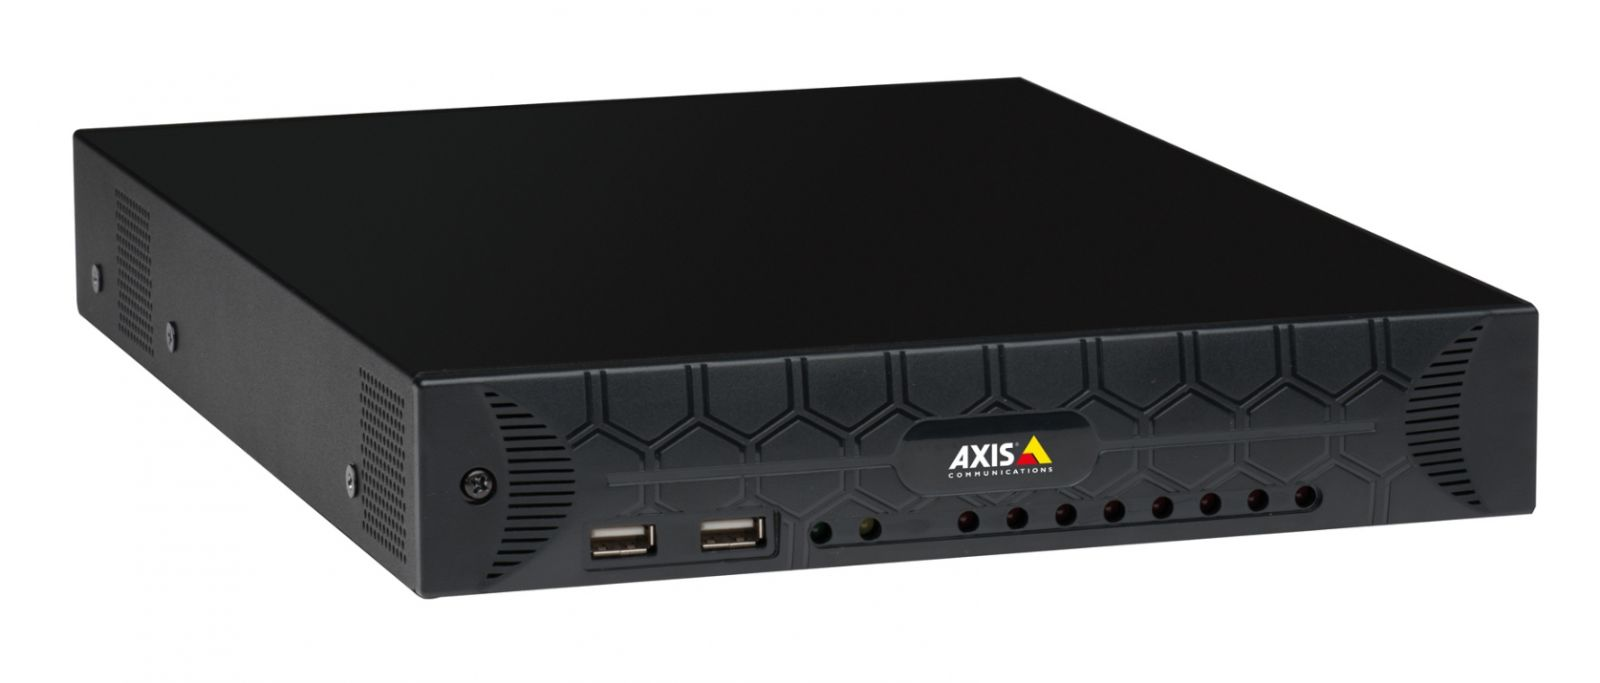 AXIS S2016 Appliance